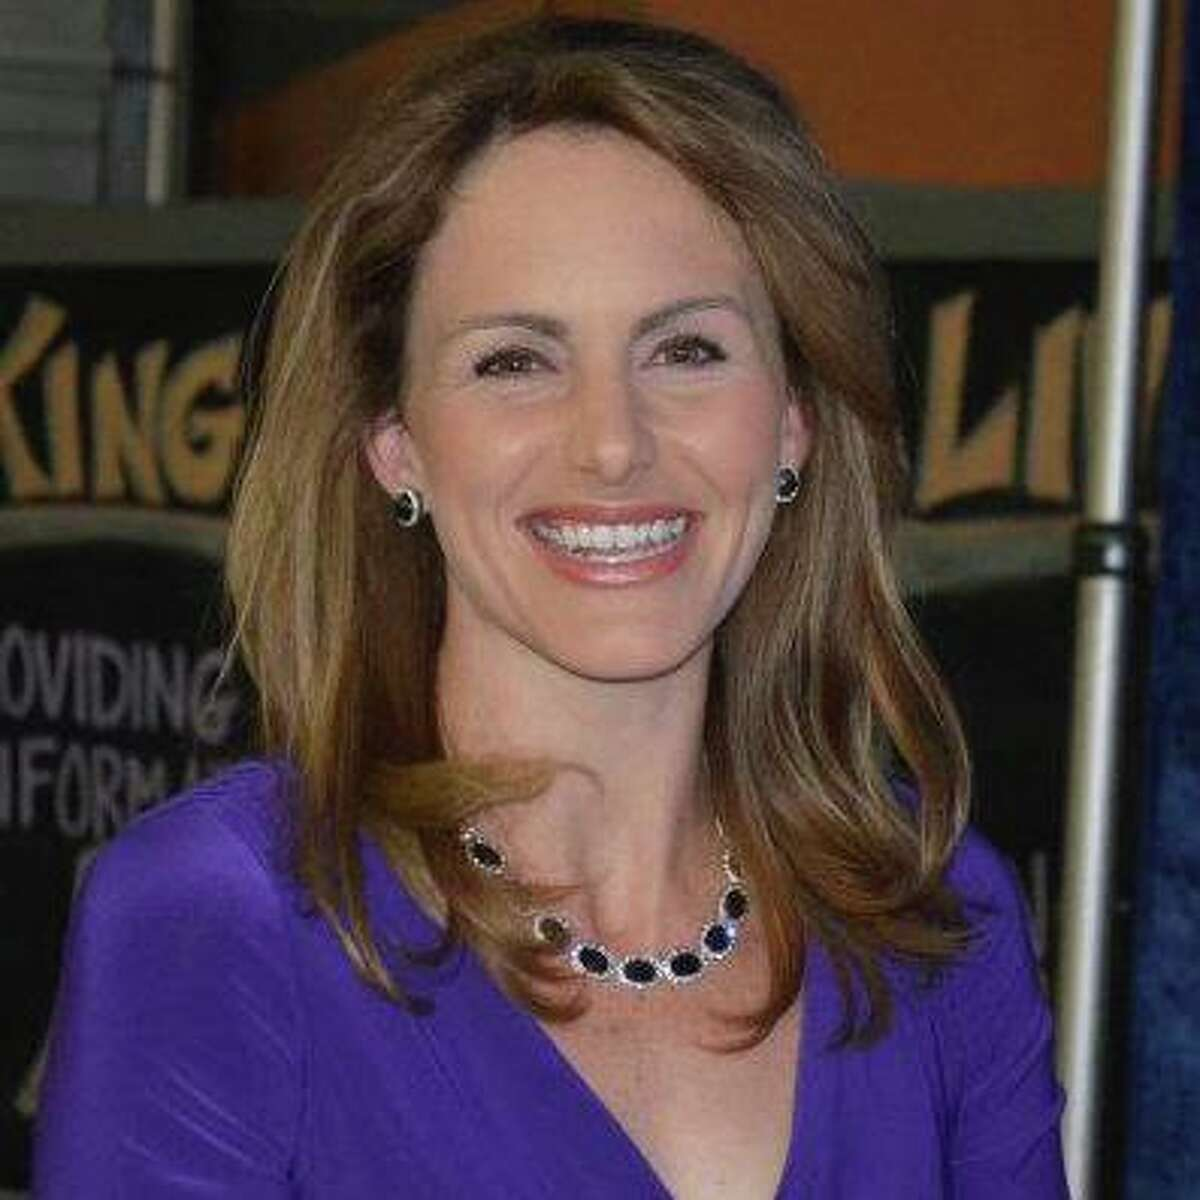 Fox 26 KRIV-TV weekend morning anchor Sally MacDonald delivered her second child in October. Related: Fox 26 anchor delivers second baby